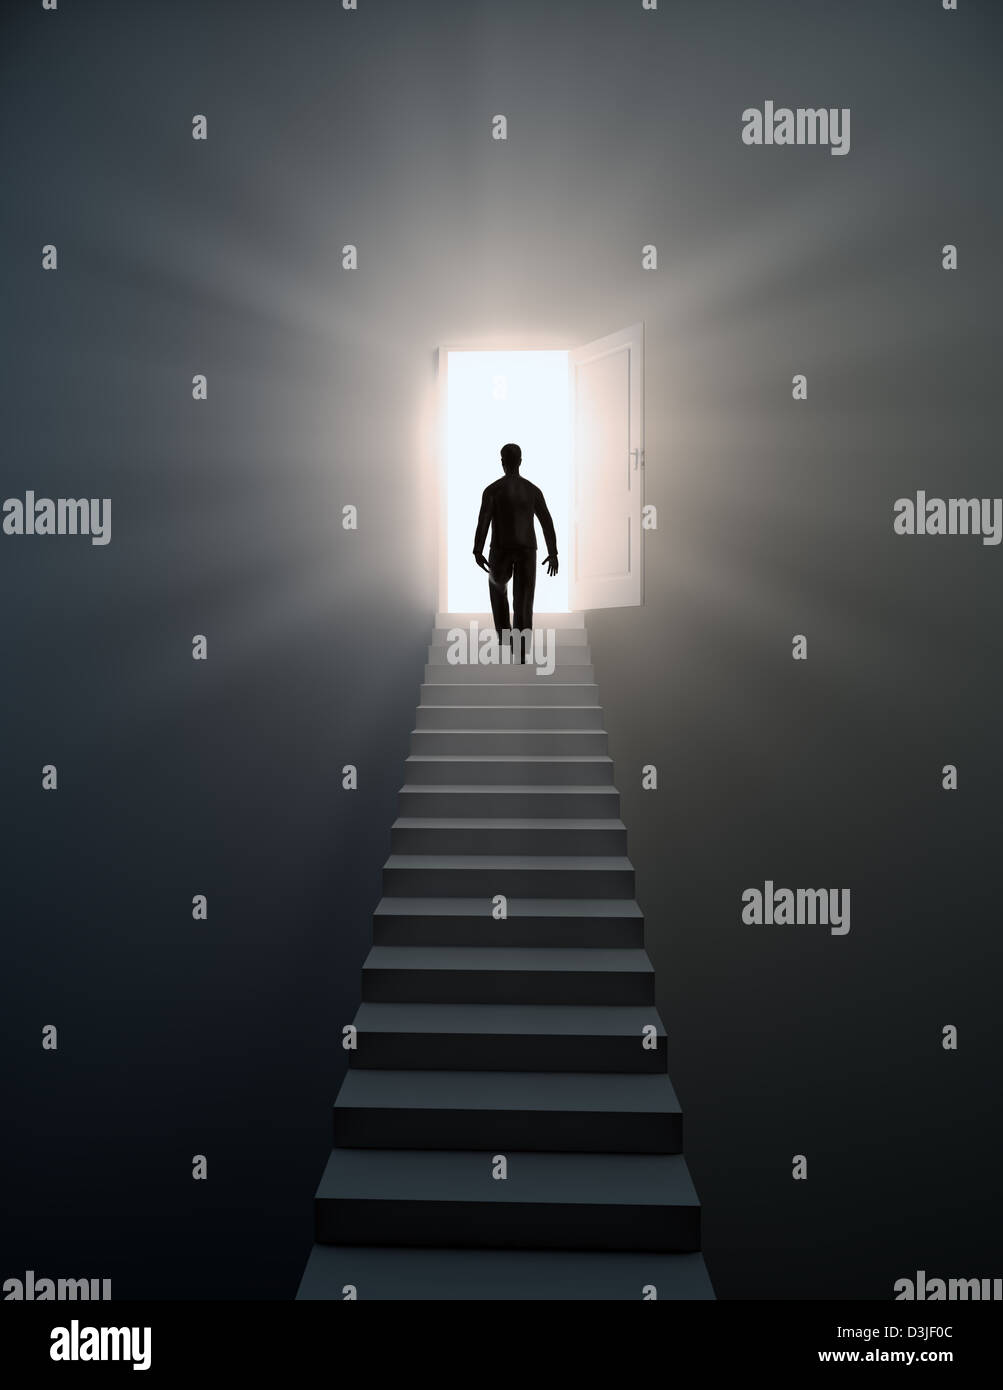 Man walking up the stairs to open doors - Stock Image